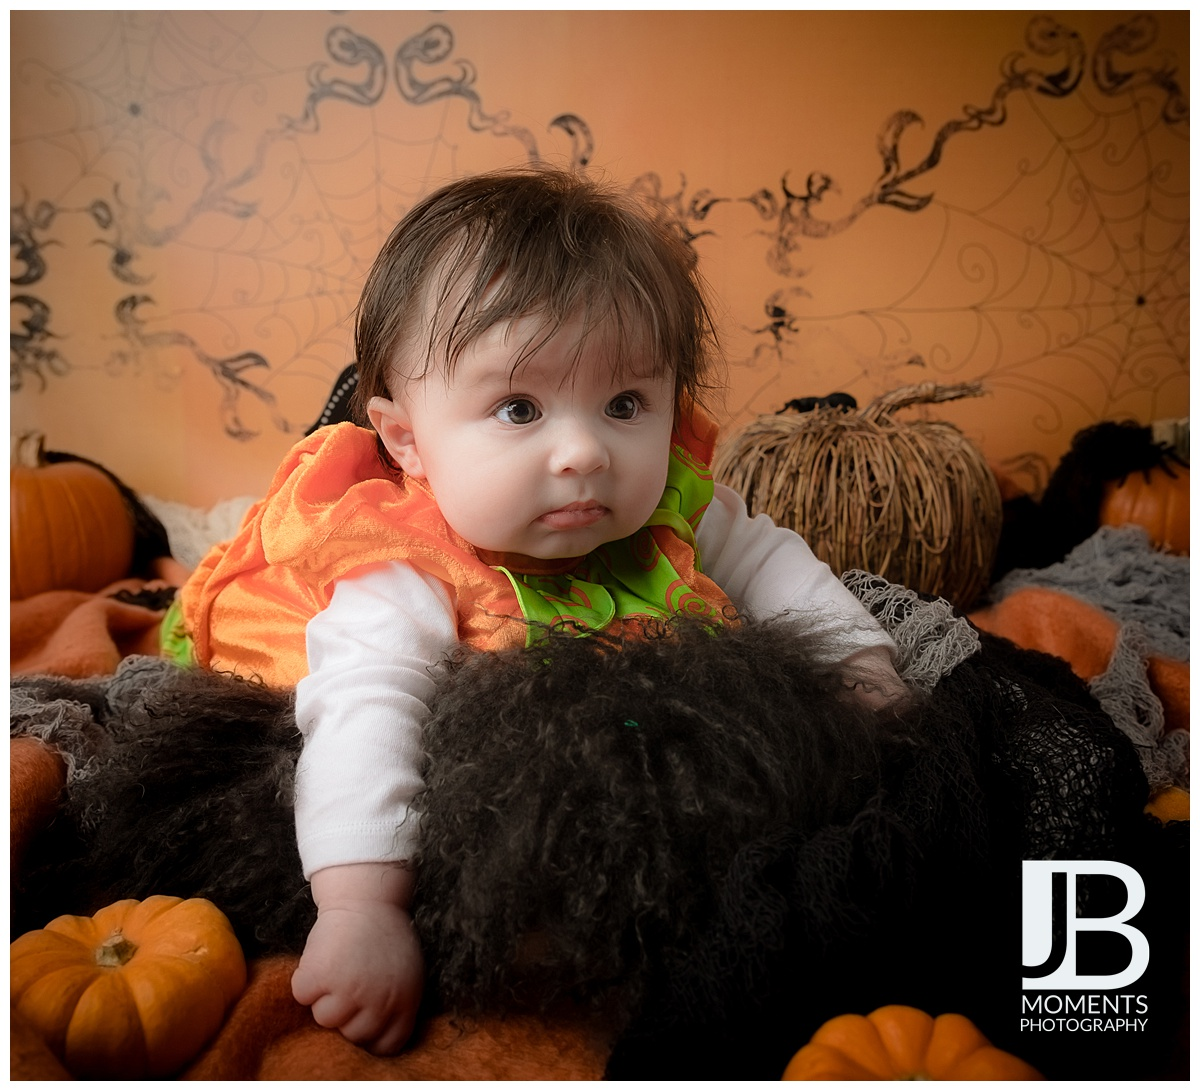 Baby Photos near Stirling - JB Moments Photography